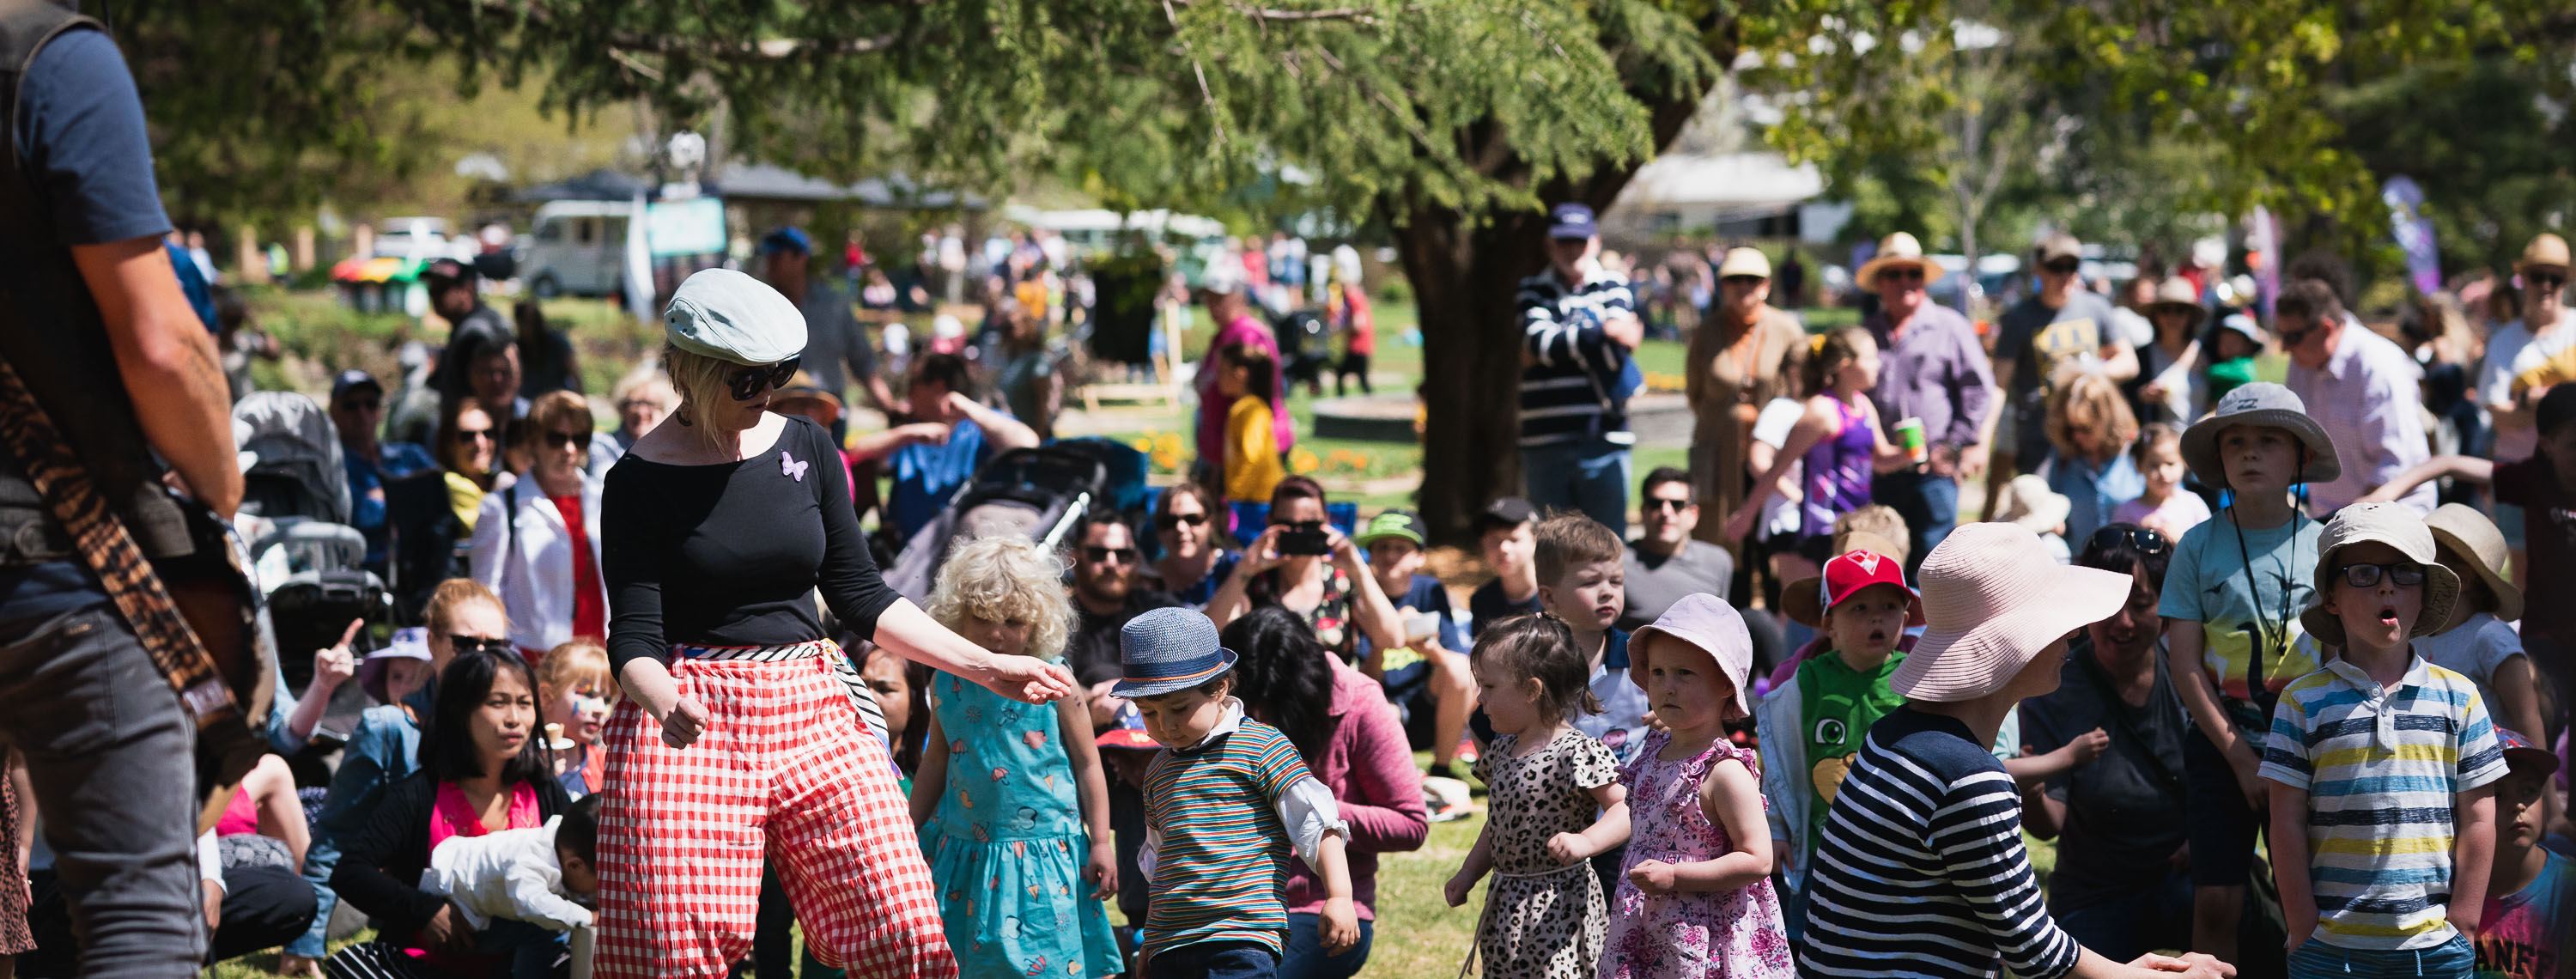 Crowds at the Spring Jam family festival in Wagga Wagga